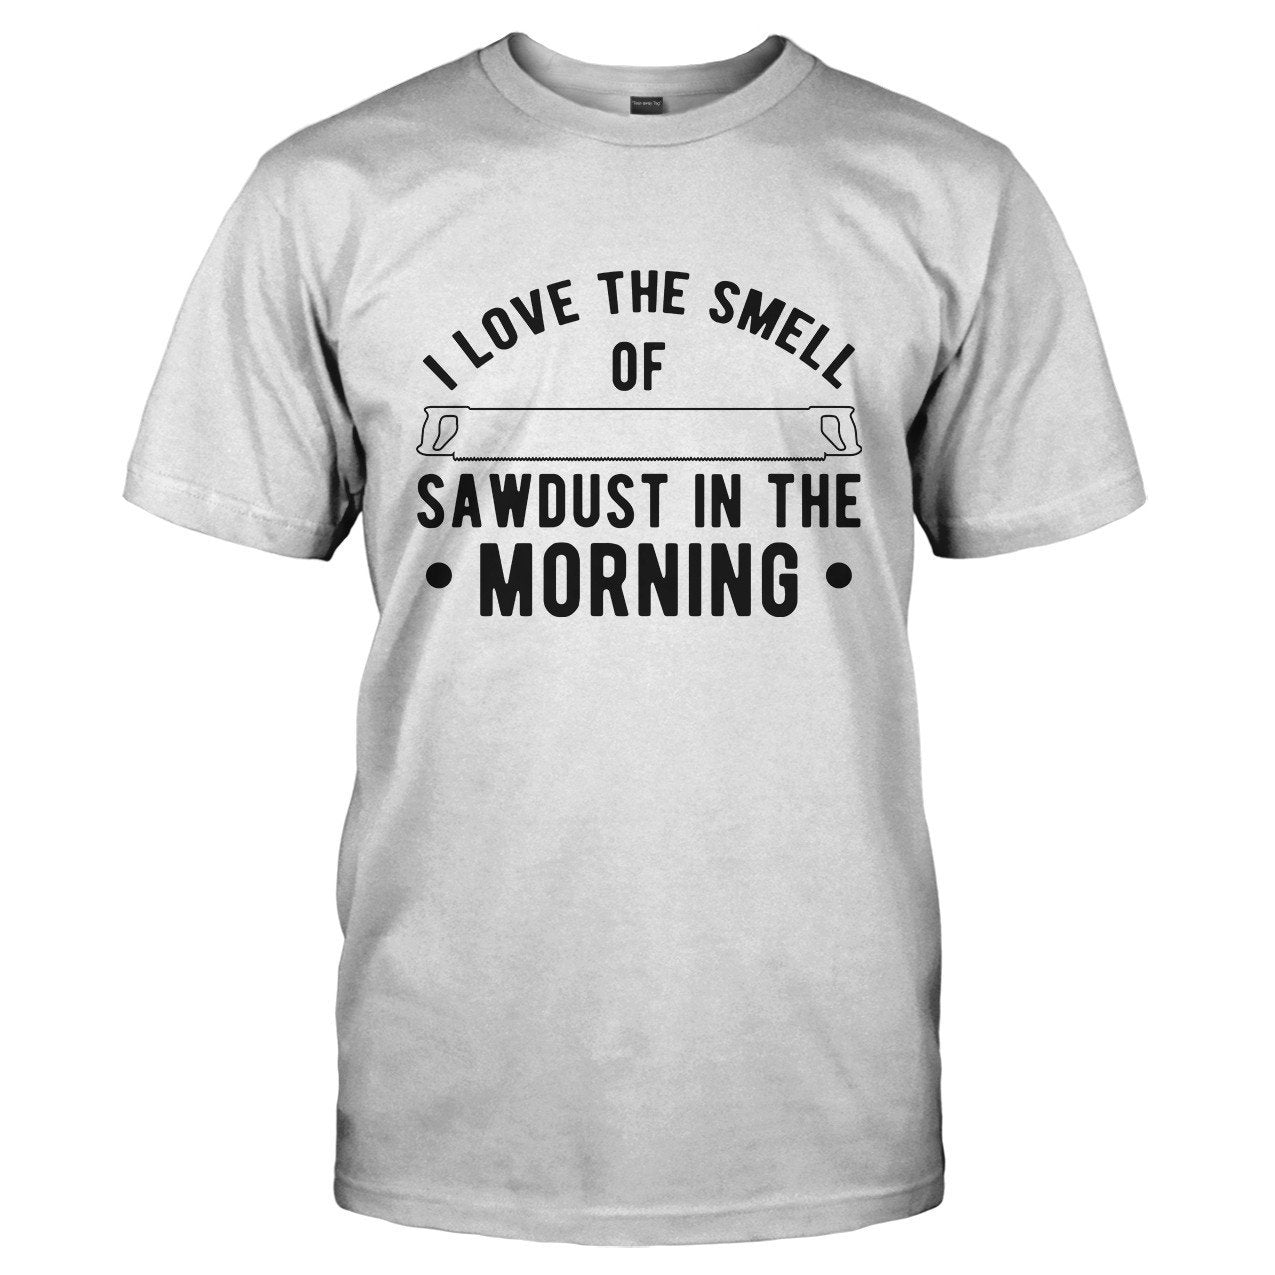 a78d893be13c I Love The Smell of Sawdust in the Morning - Carpenter T-Shirts and Hoodies  - I Love Apparel